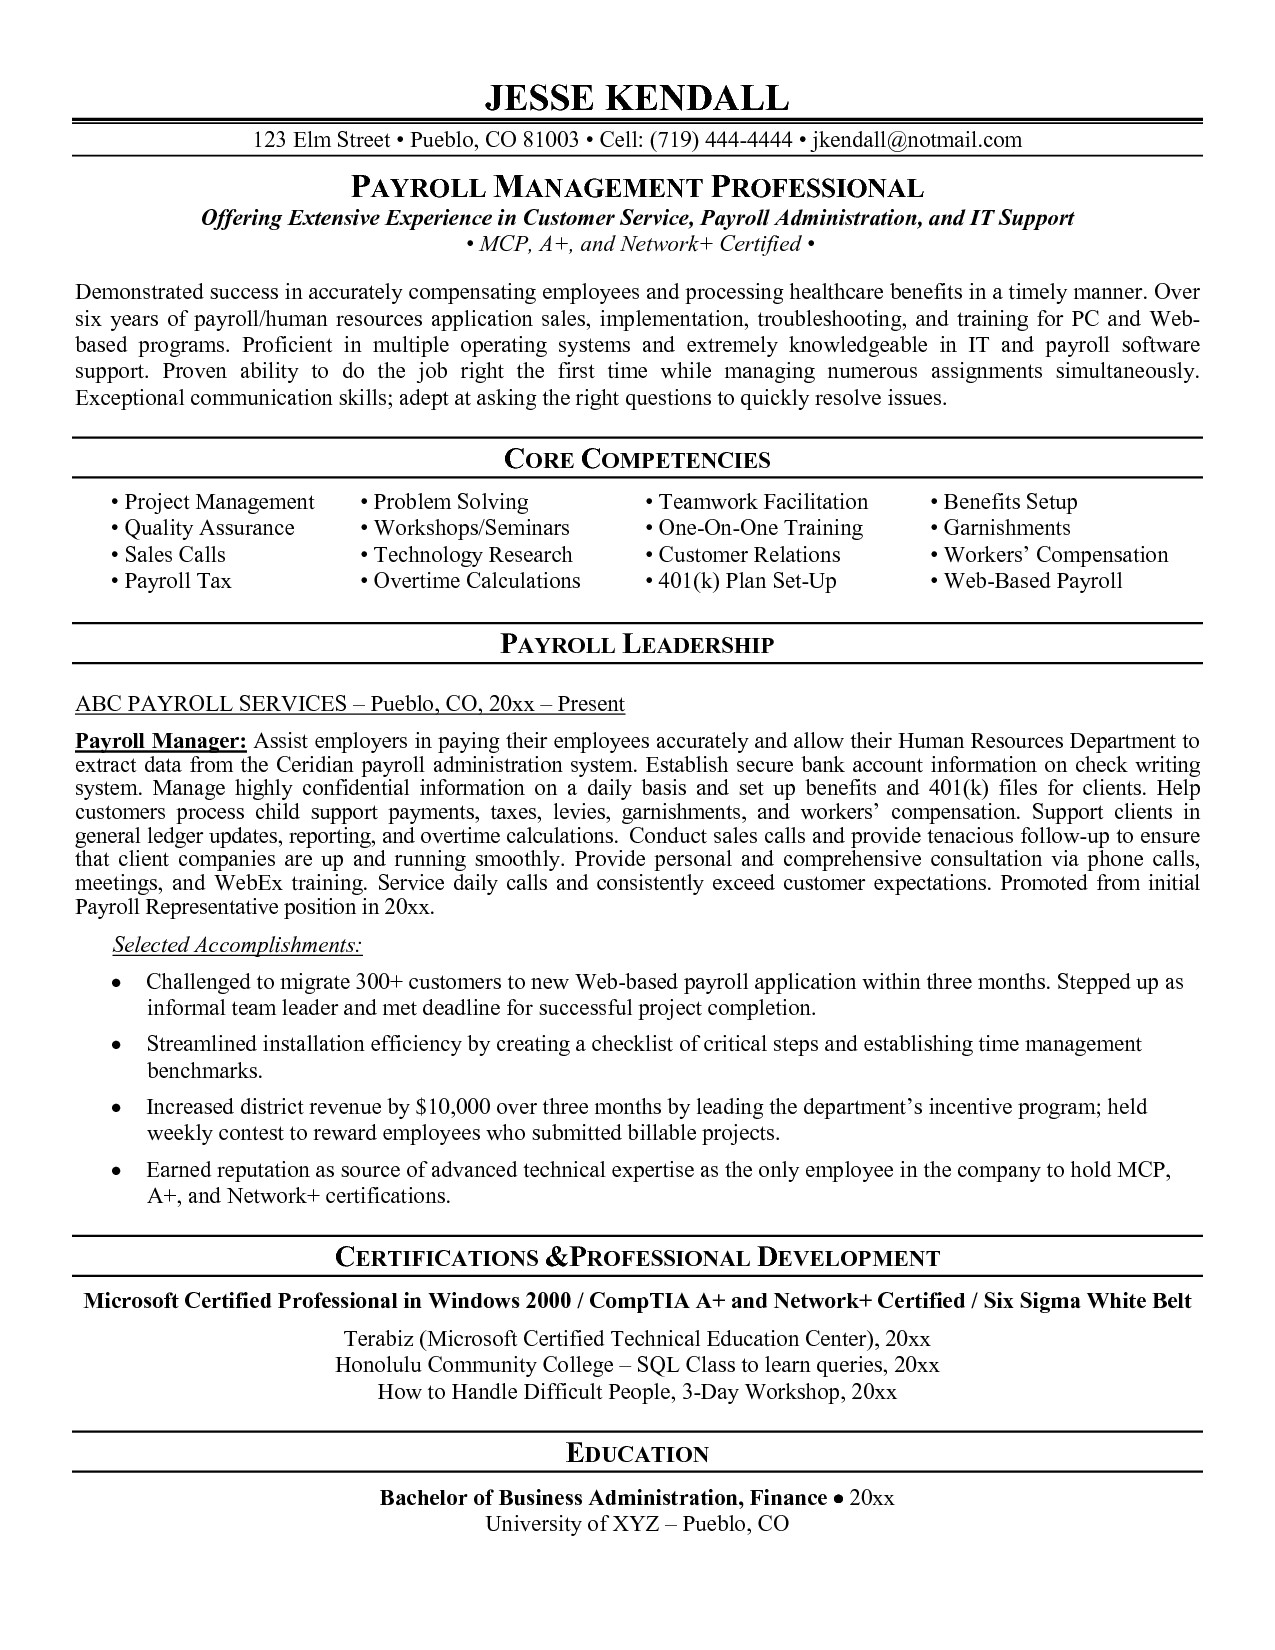 payroll manager resume 1668